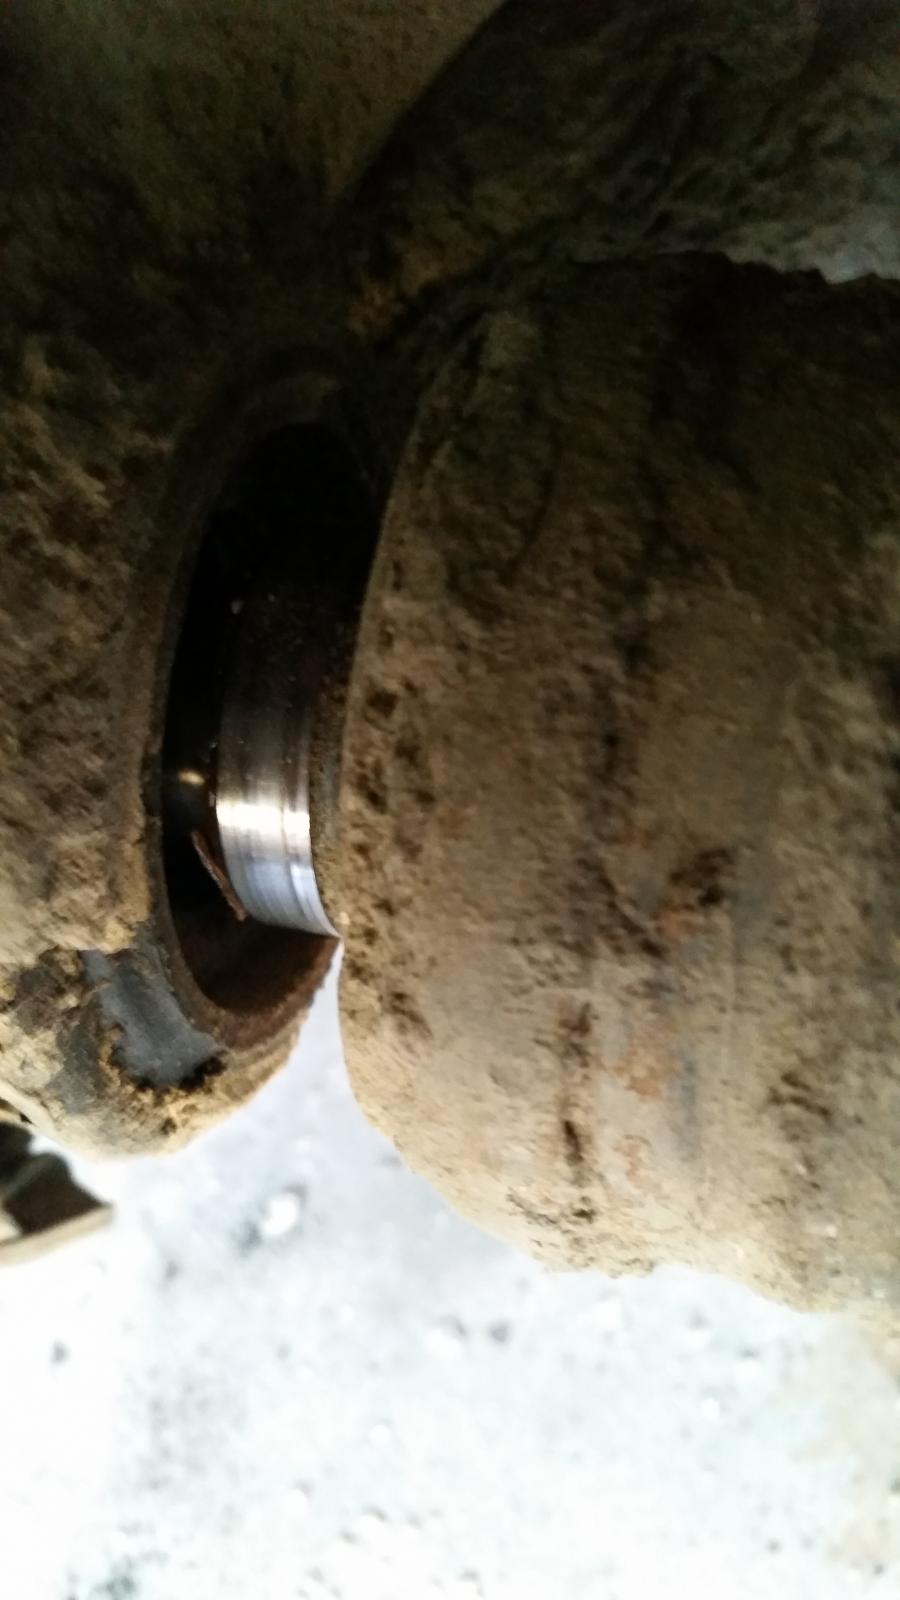 Axle shaft displaced